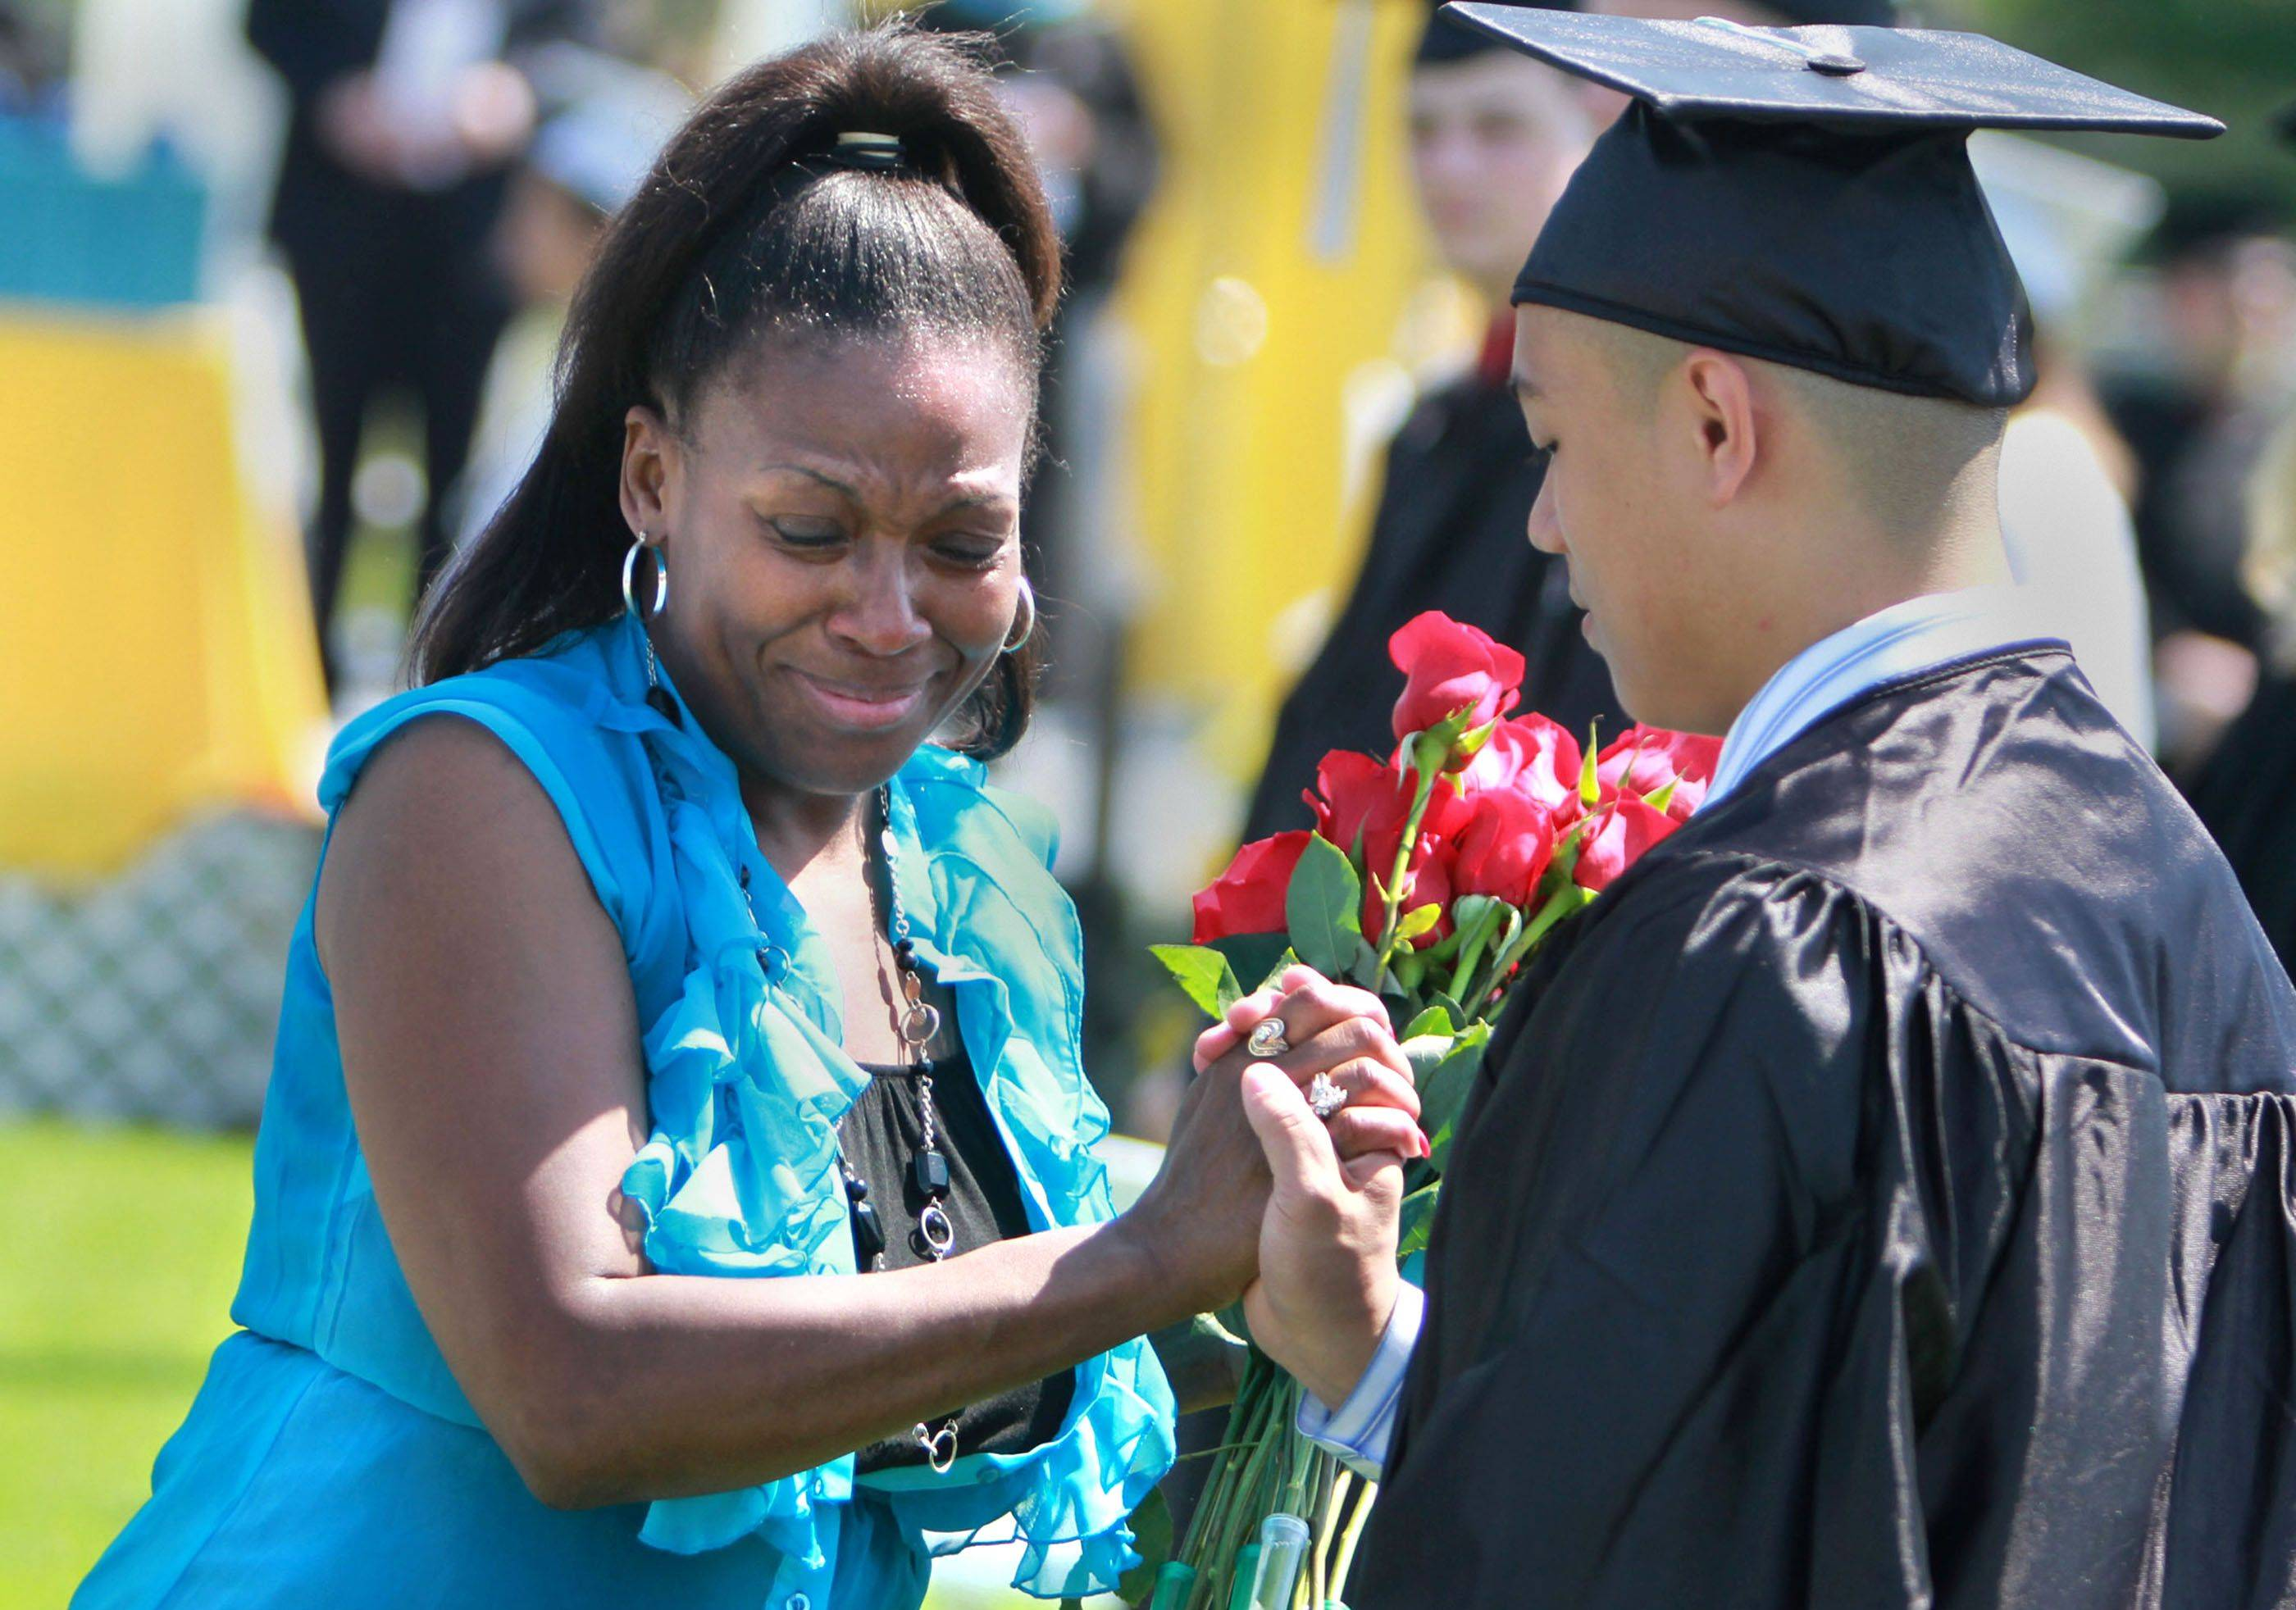 Loreene Taylor received her son Choice's diploma, roses from 20 students and a hand from Jacob Manlucu during Maine West High School's graduation ceremony Sunday in Des Plaines. Choice Taylor, 17, was struck and killed by a truck November 5th, 2010 in Des Plaines, while walking home from work.